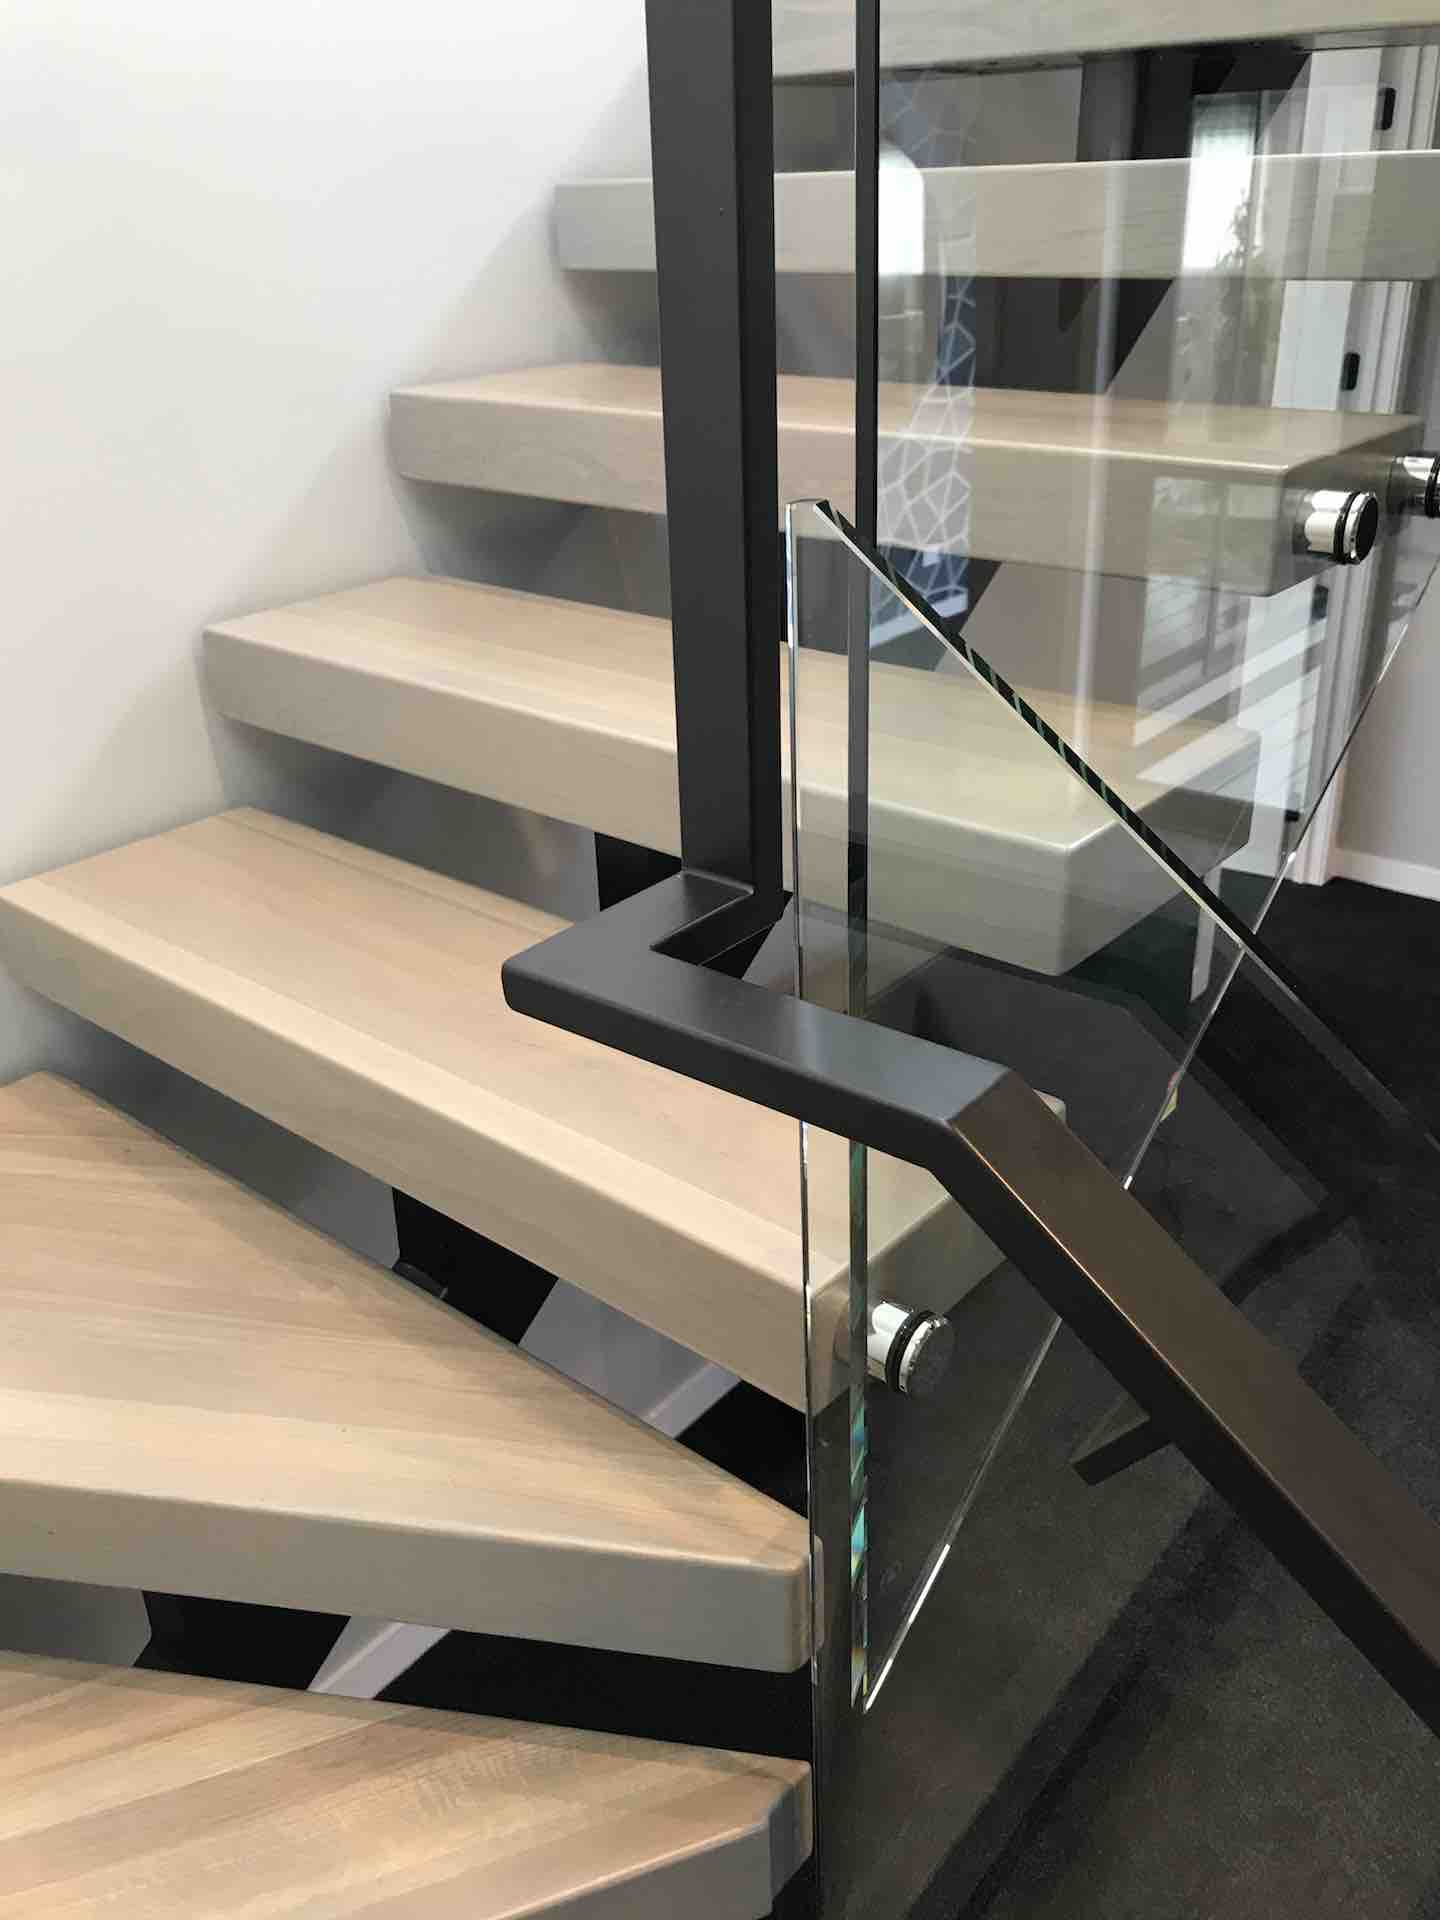 Metal handrail on floating stairs